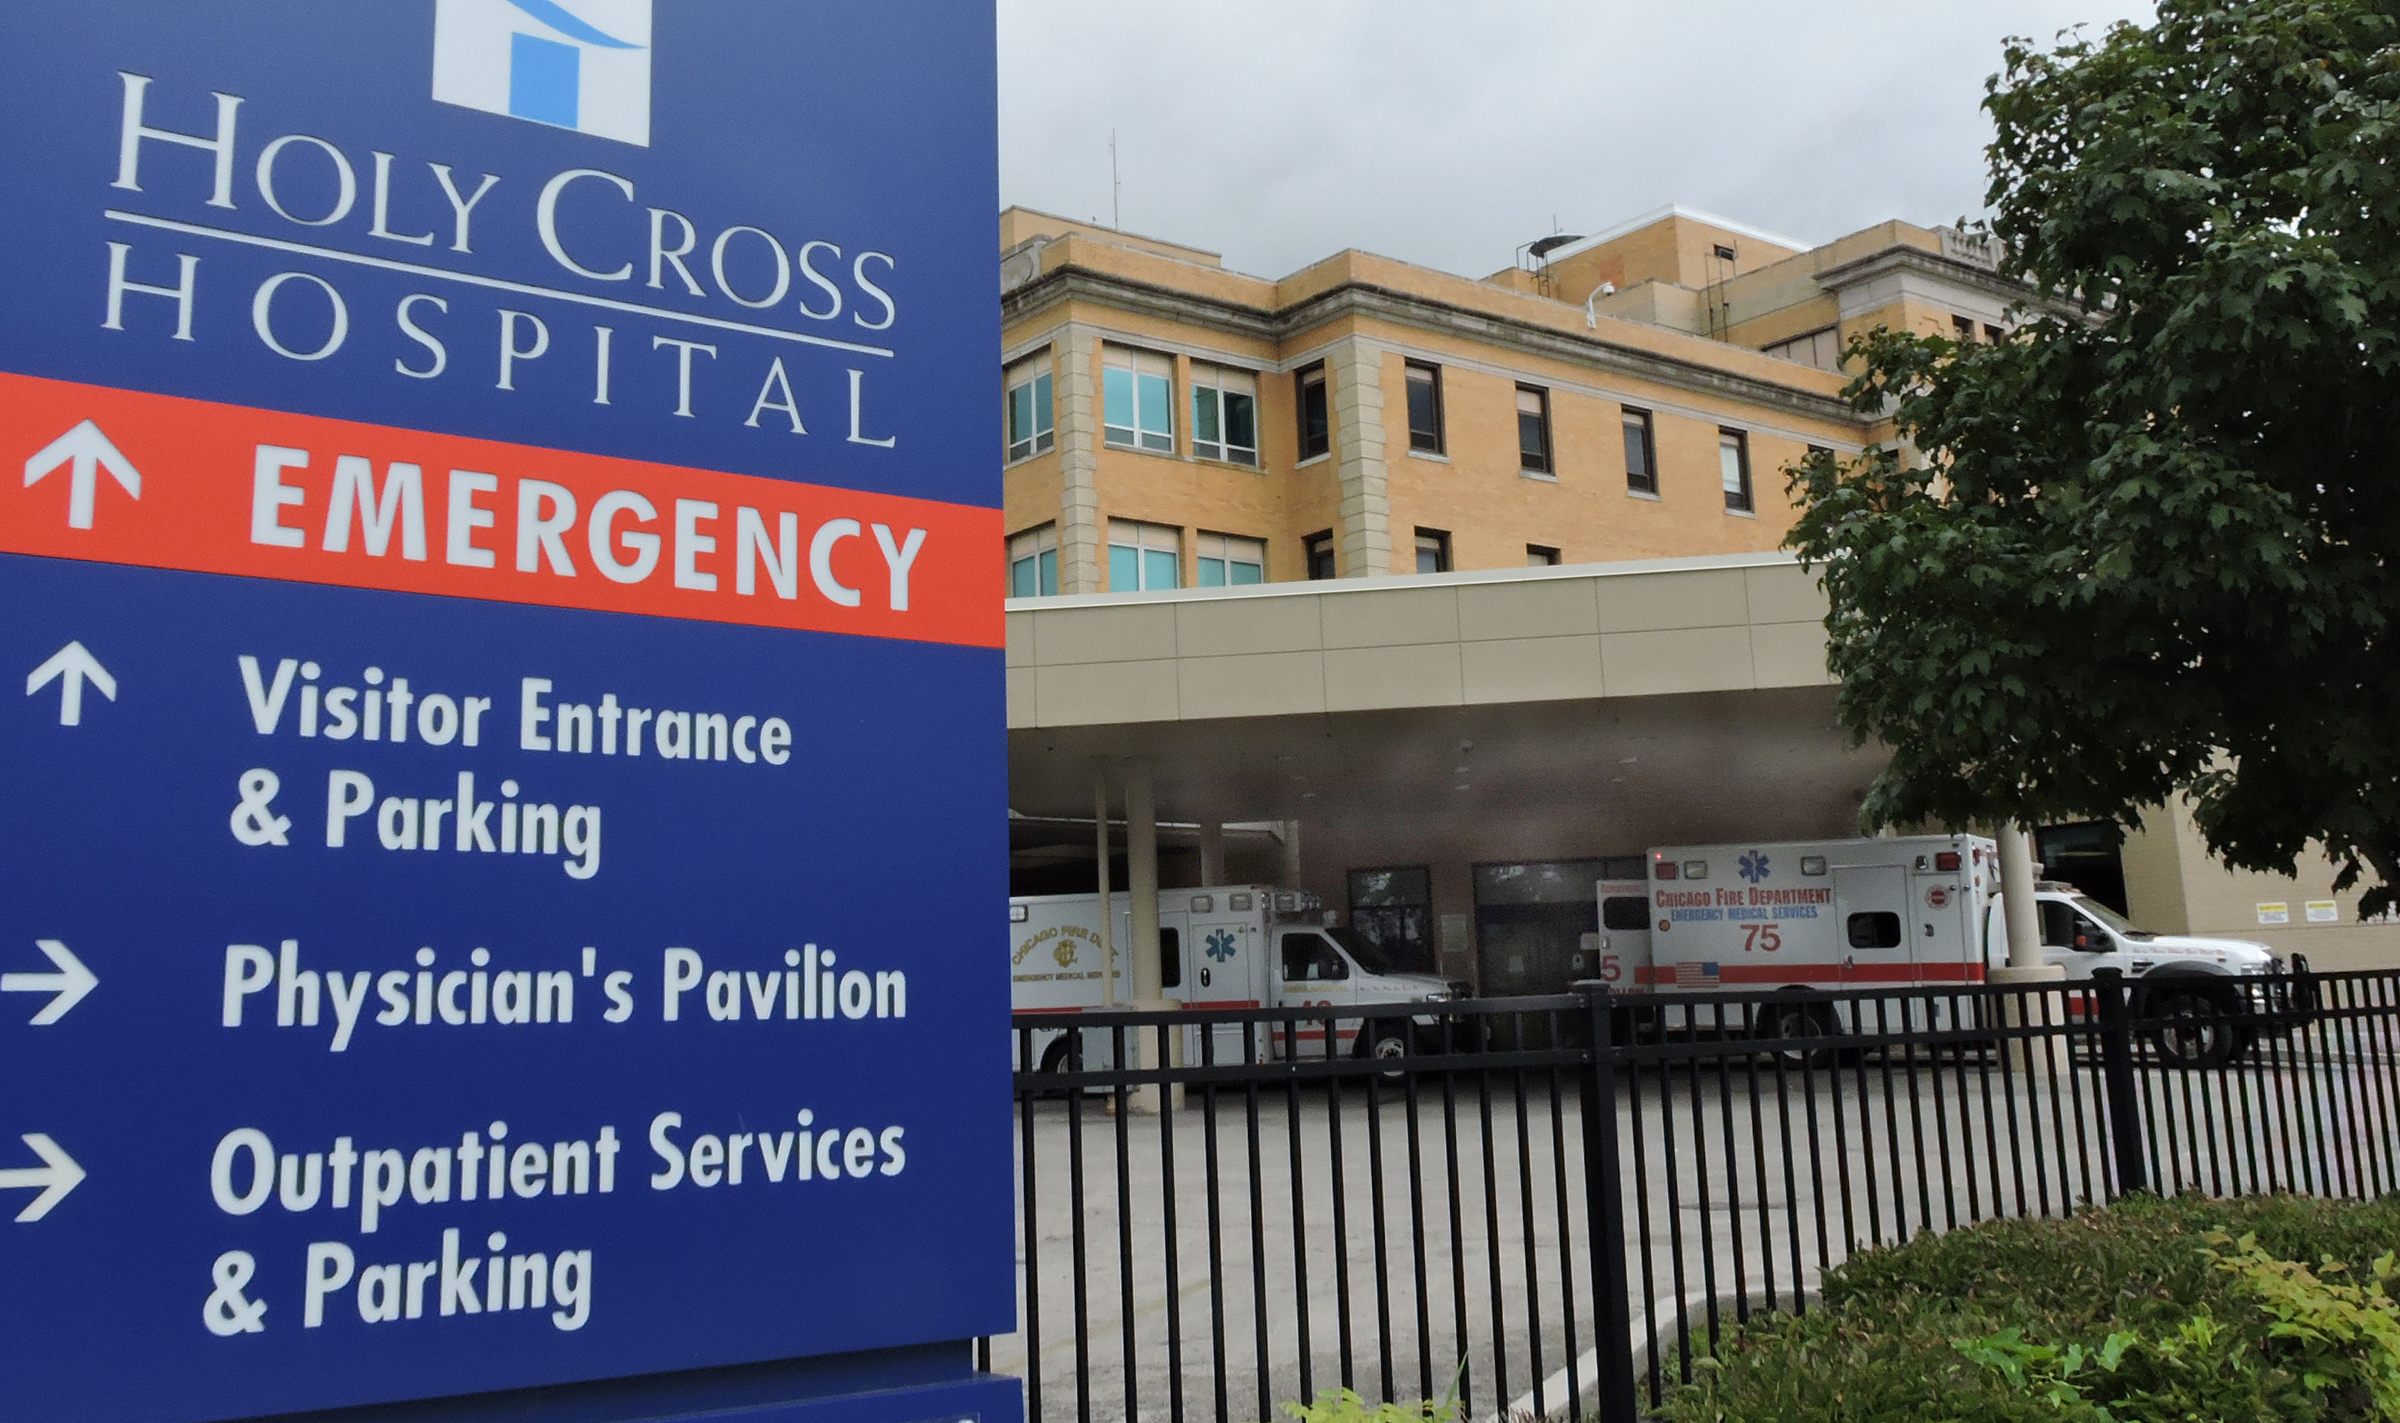 Sinai Health System will scale back services at Holy Cross Hospital in November.